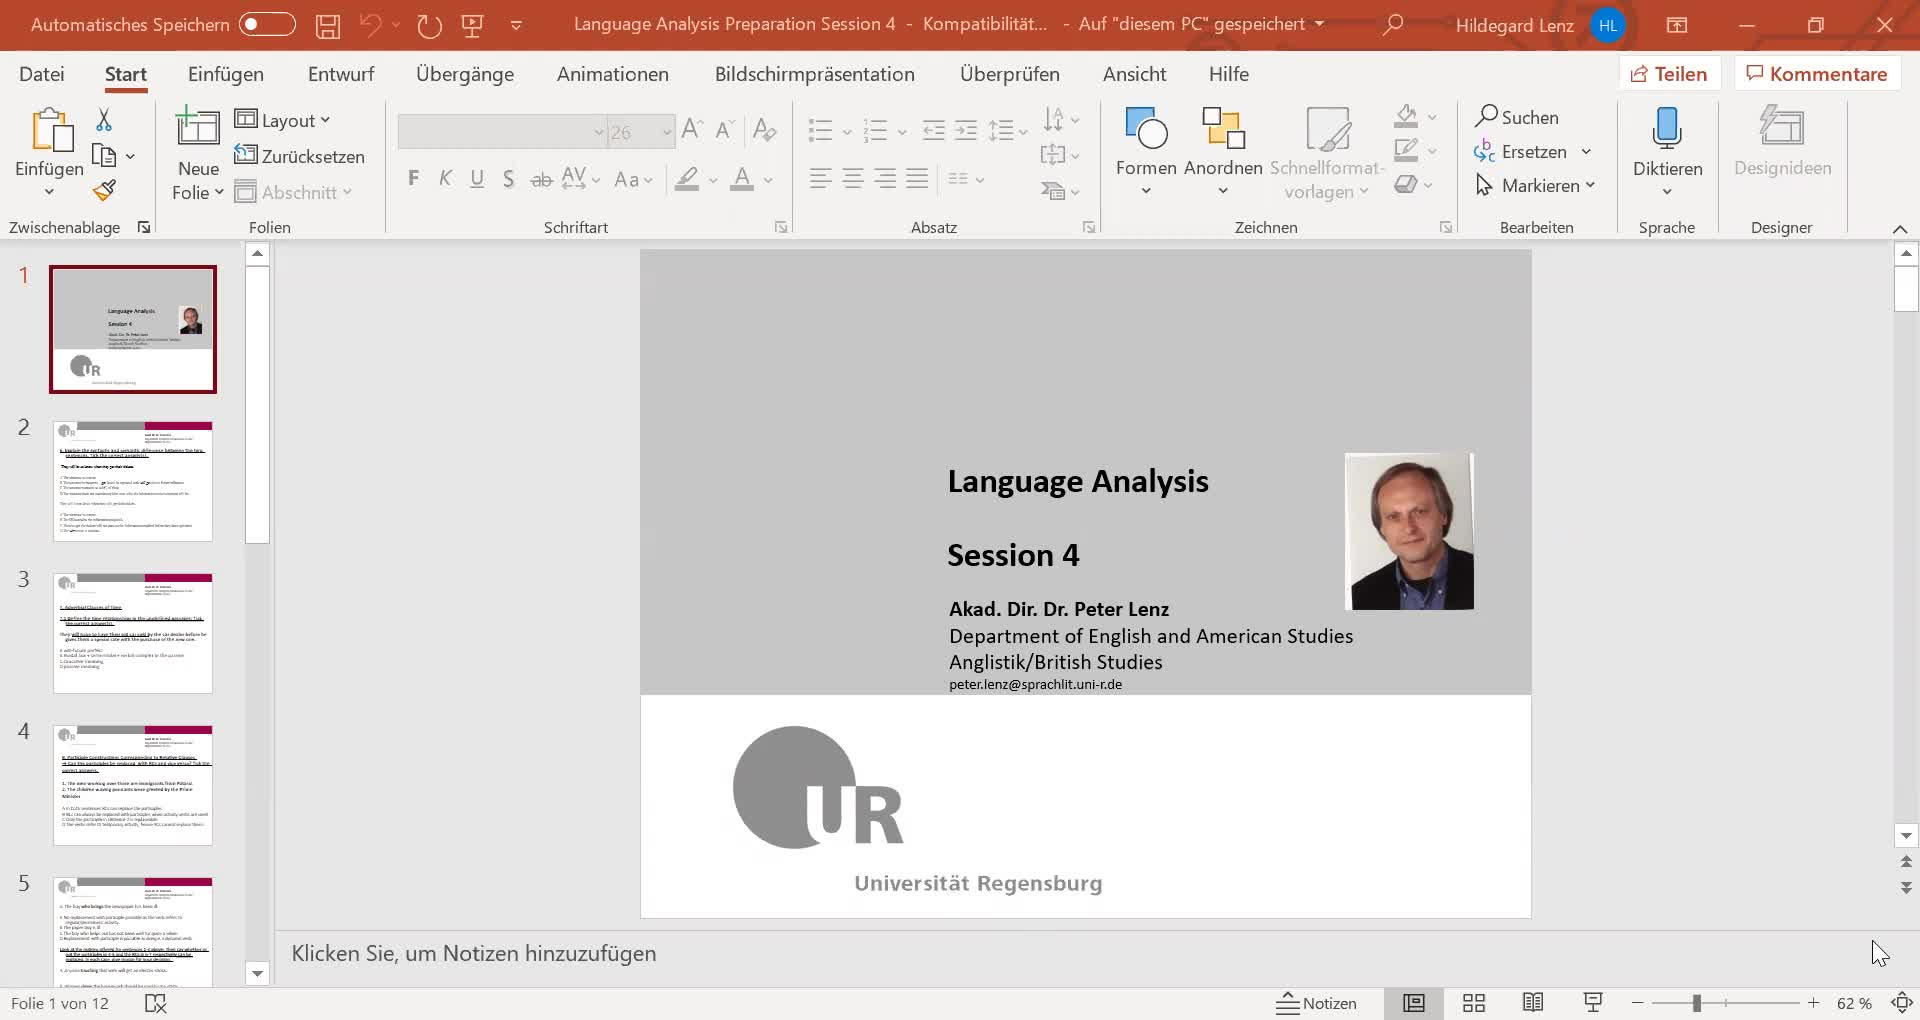 Language Analysis Session 4